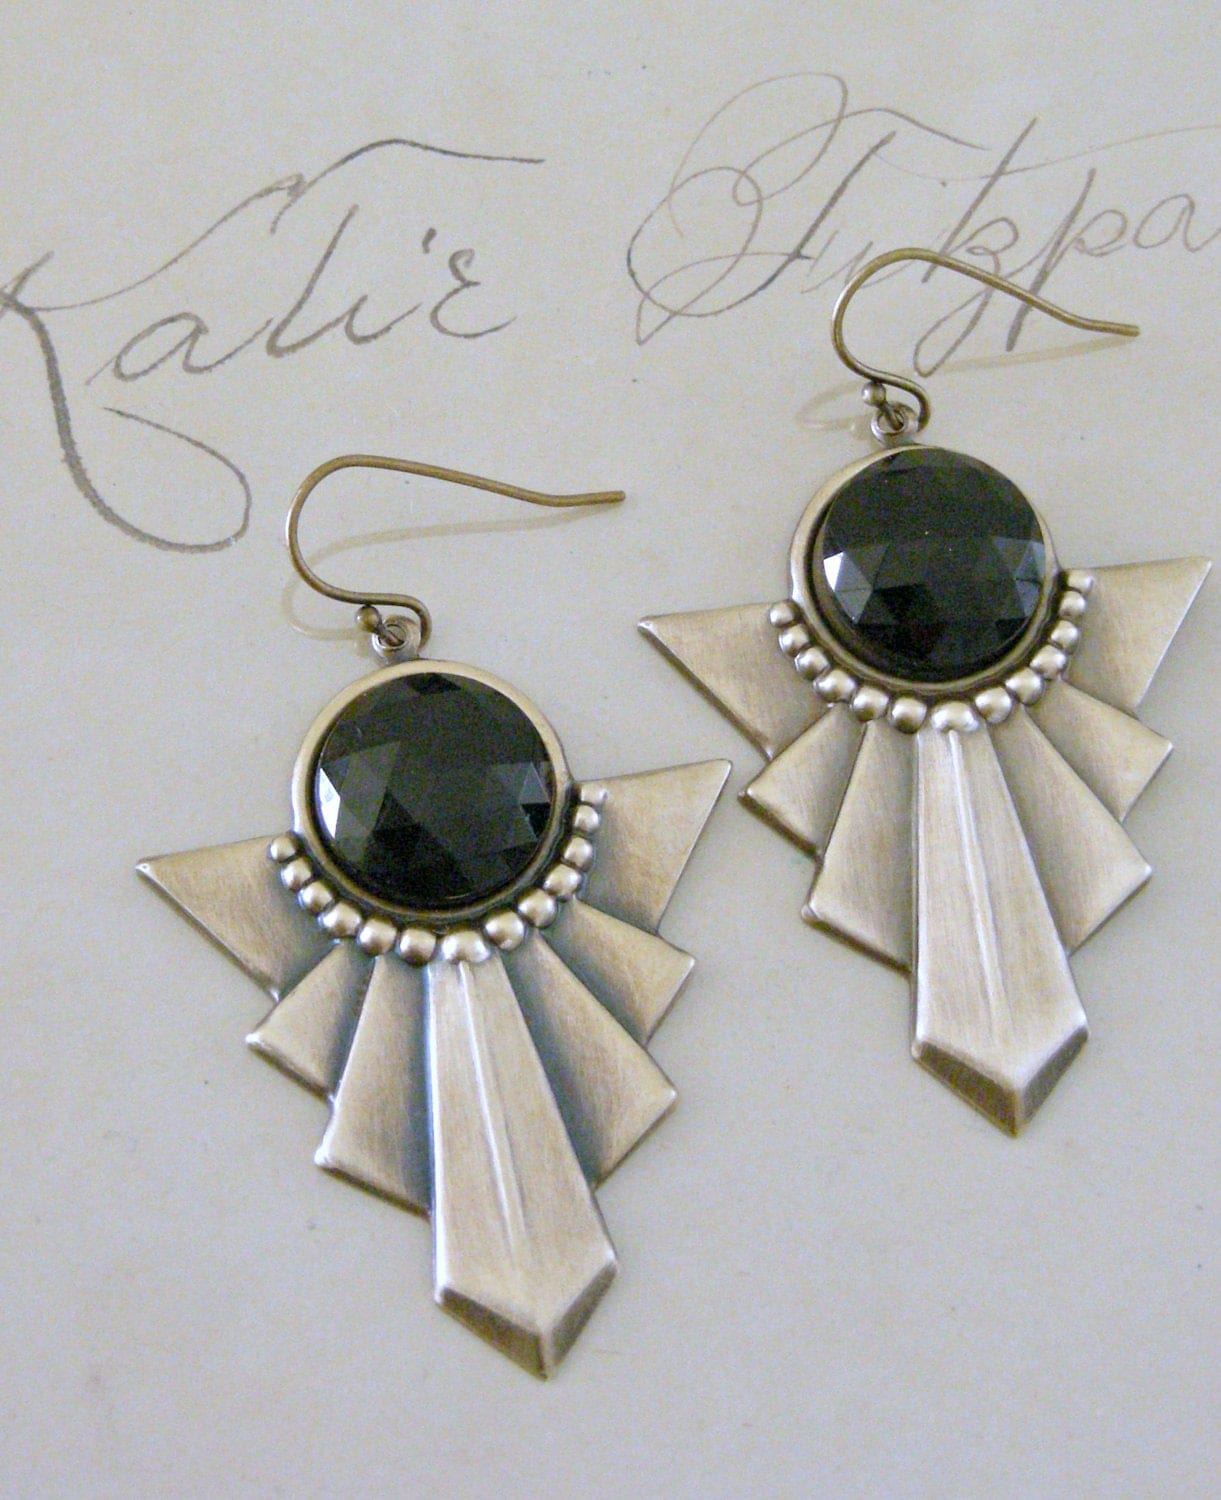 Vintage Earrings Art Deco Earrings Black Onyx Earrings